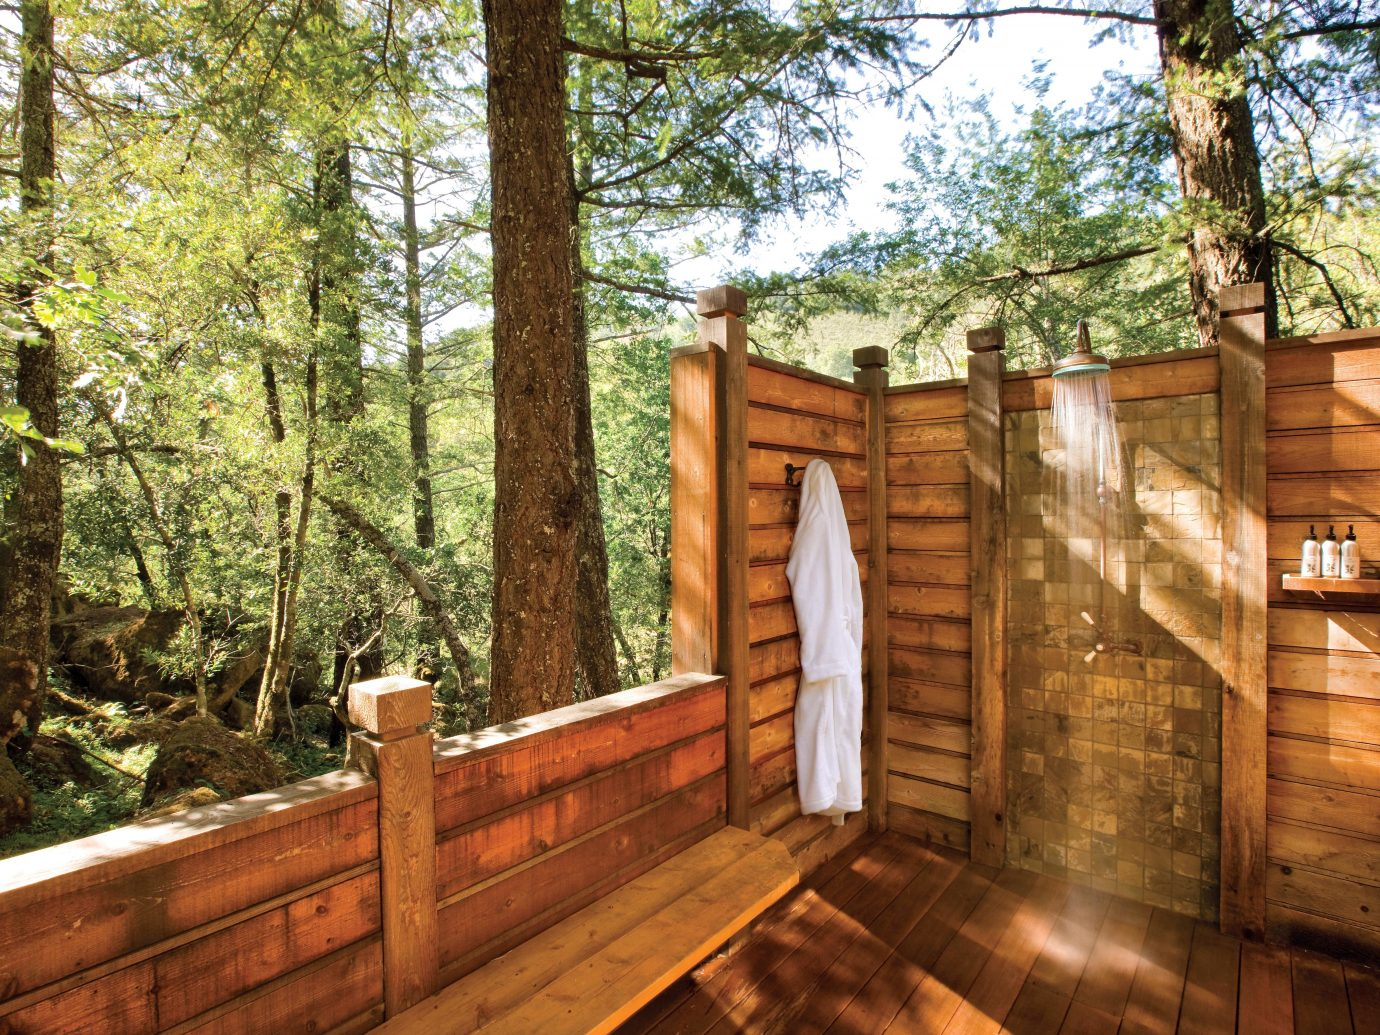 Bath Eco Health + Wellness Hotels Luxury Outdoors Ranch Romance Romantic Rustic Spa Retreats Wellness tree property wood estate backyard home wooden log cabin outdoor structure cottage real estate wooded